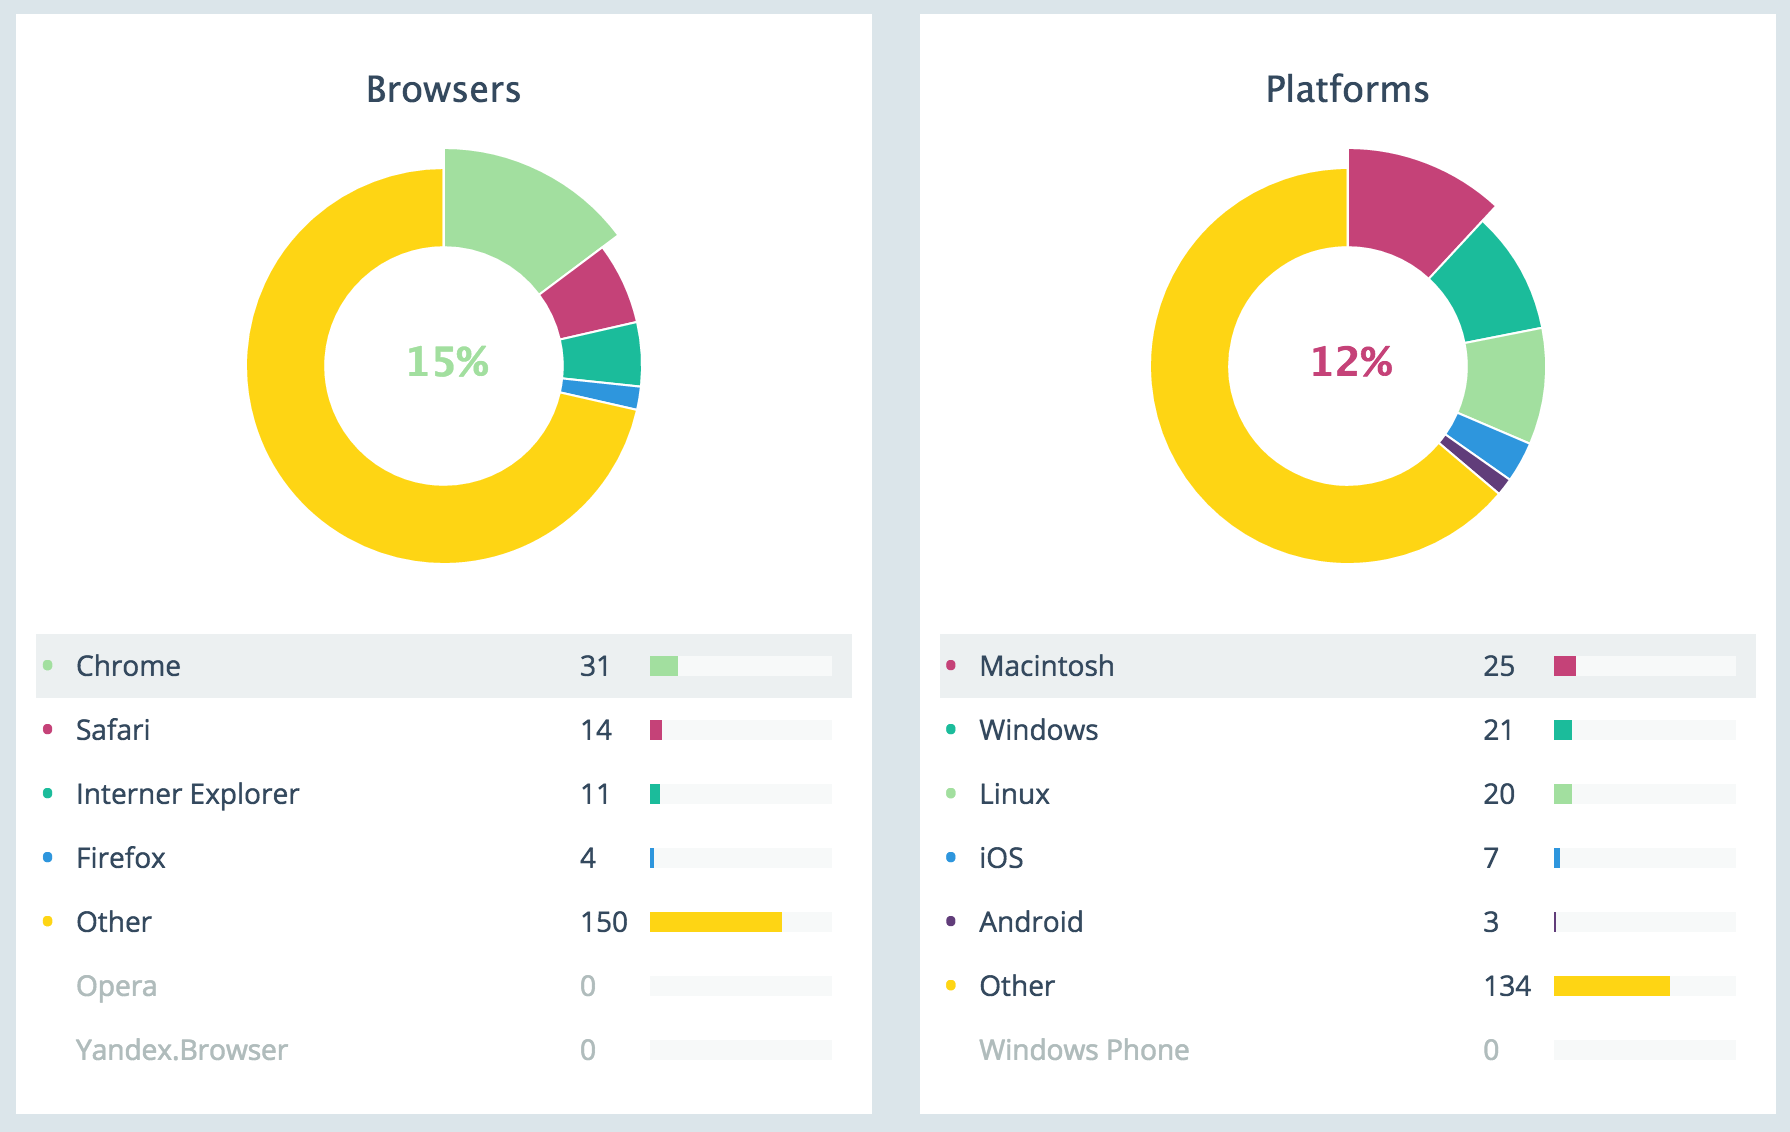 Browsers and platforms